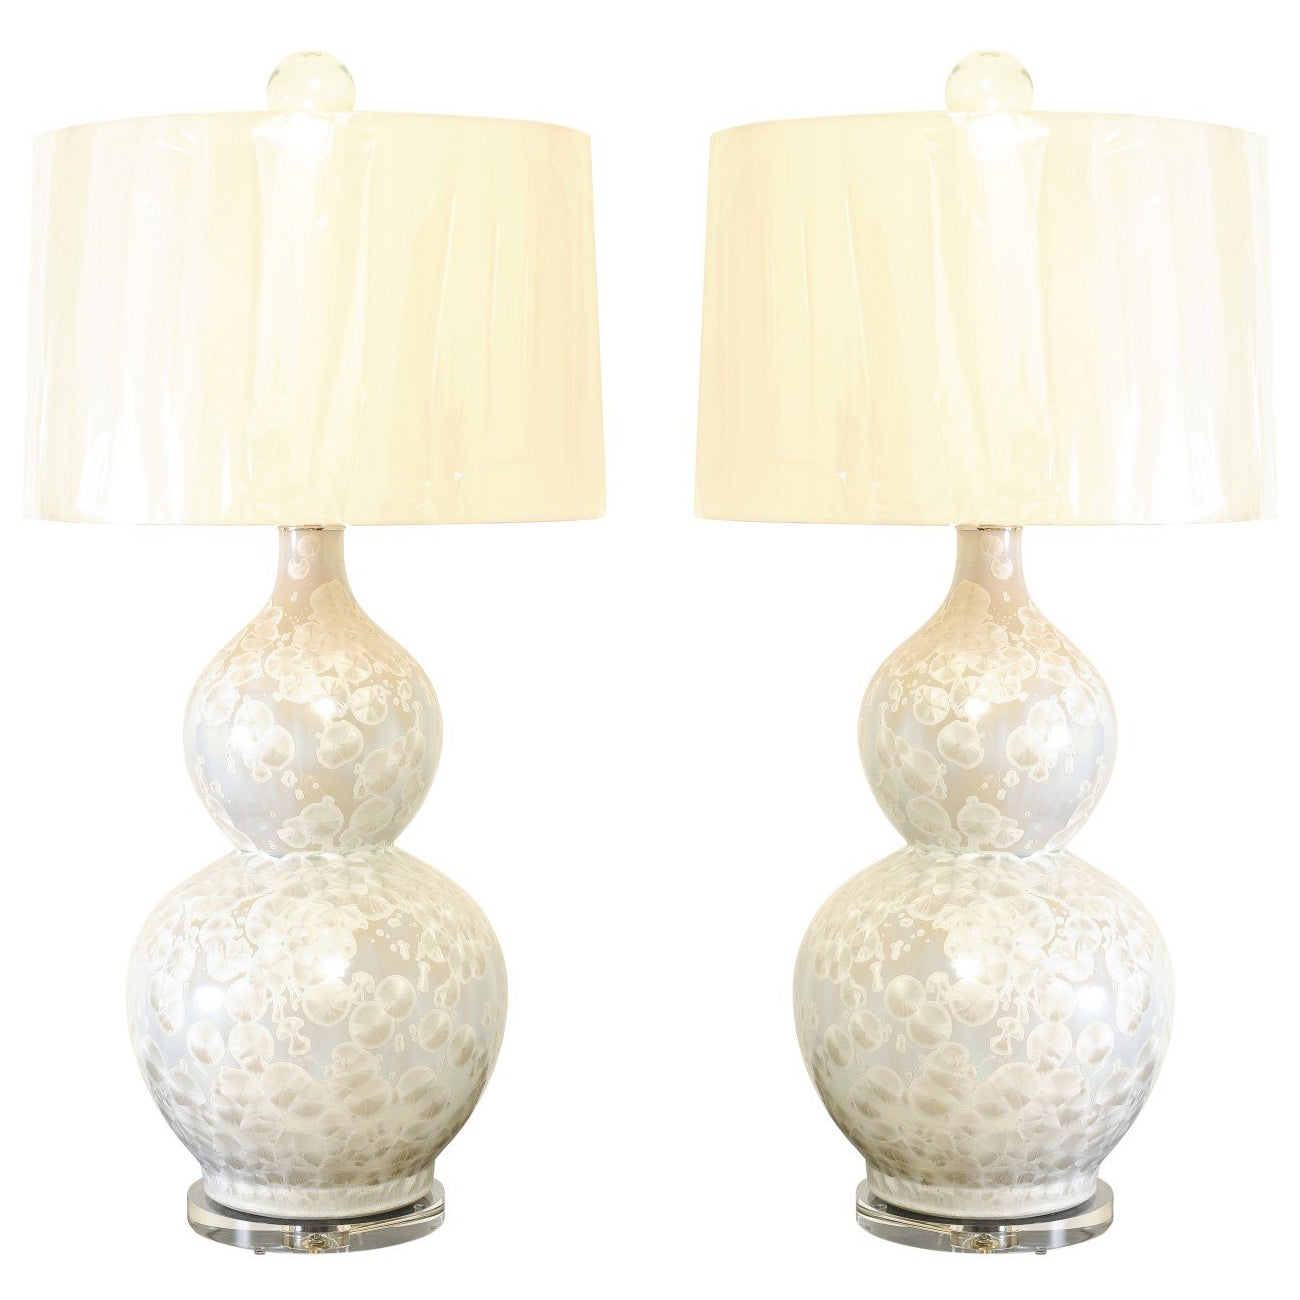 Sophisticated Pair of Large Fish-Scale Glaze Ceramic Double Gourd Lamps